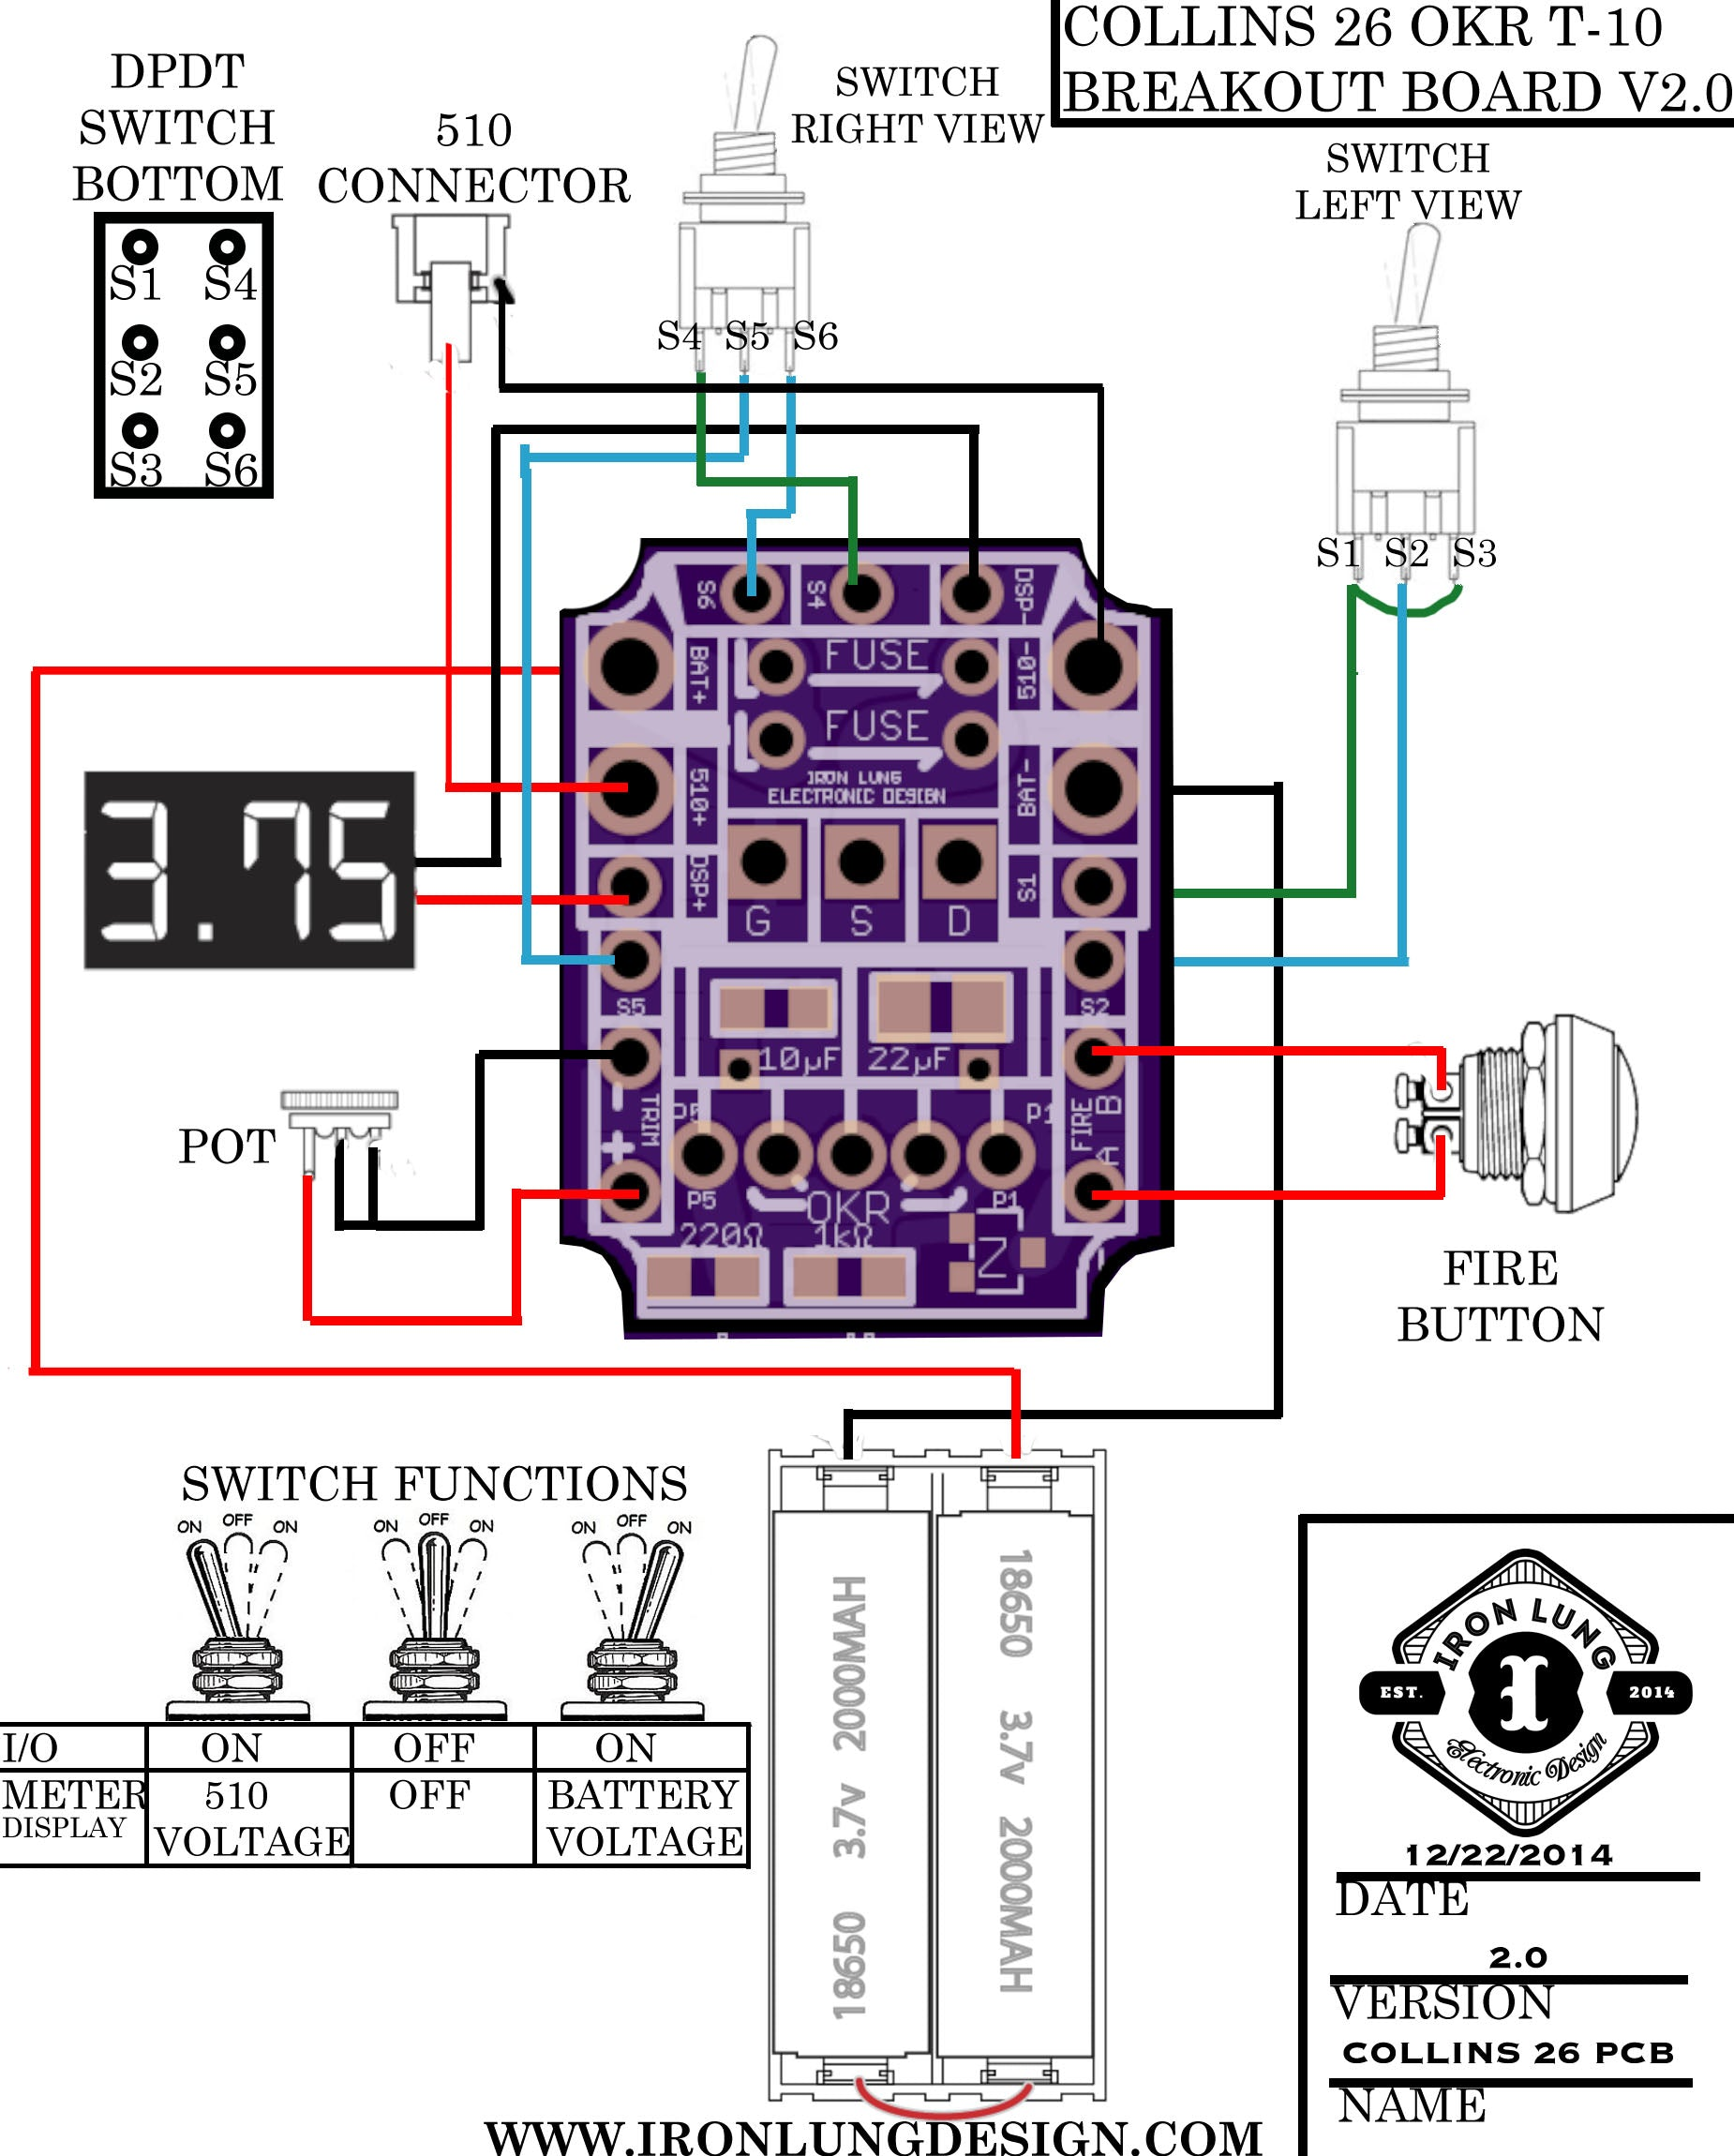 OKR Breakout Board now available OpenPV